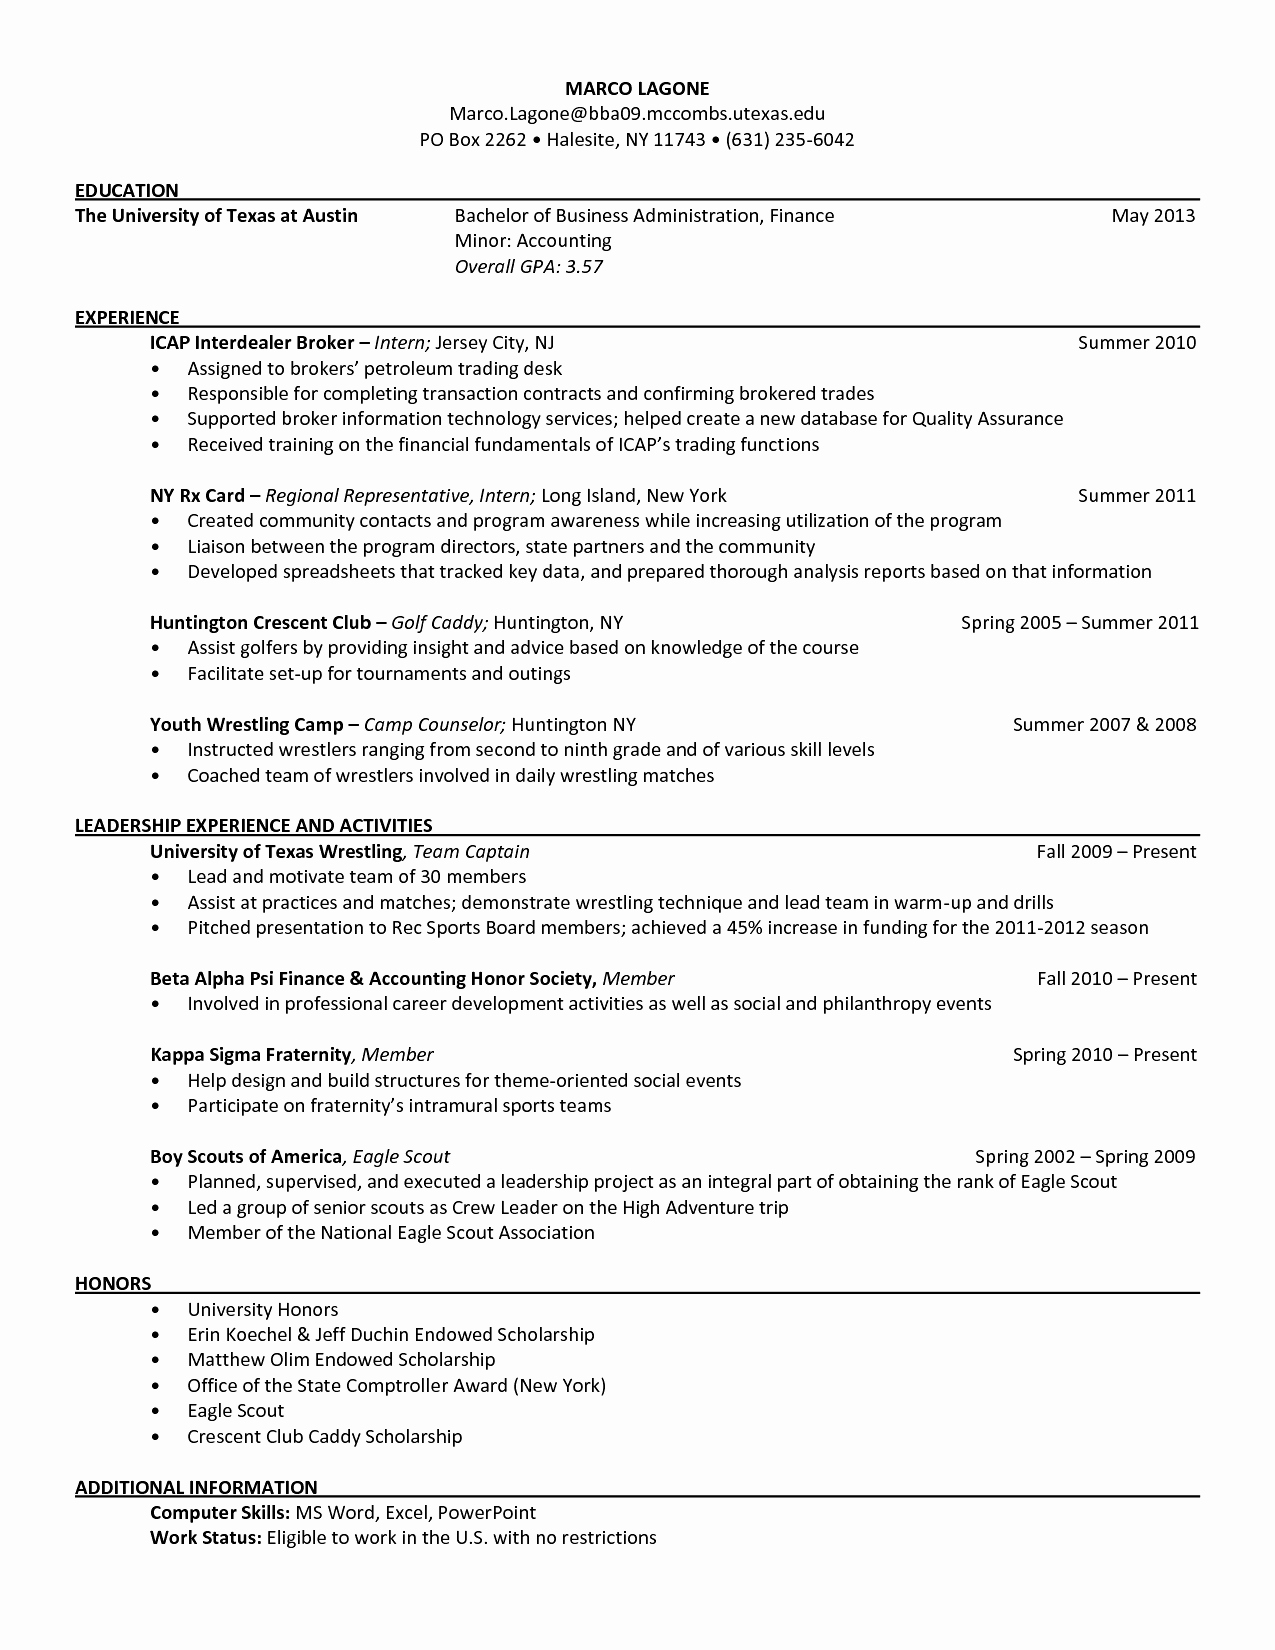 utexas mccombs resume template Collection-Mc bs Resume Template Beautiful Mc Bs Resume format Position Resume Ideas 7-i